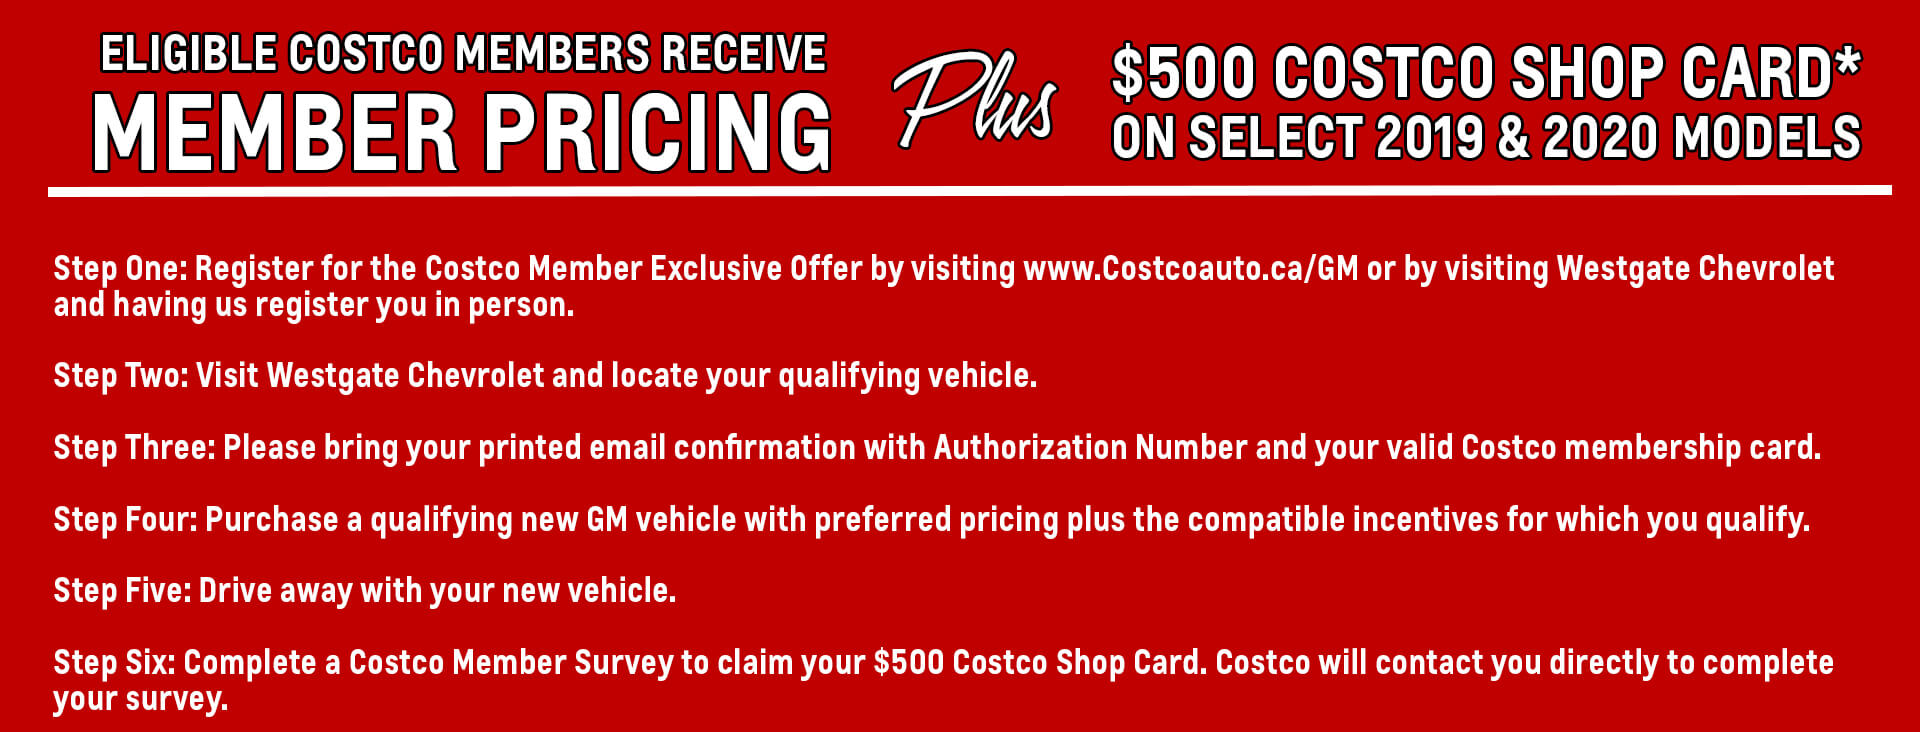 finding your costco member price at westgate chevrolet